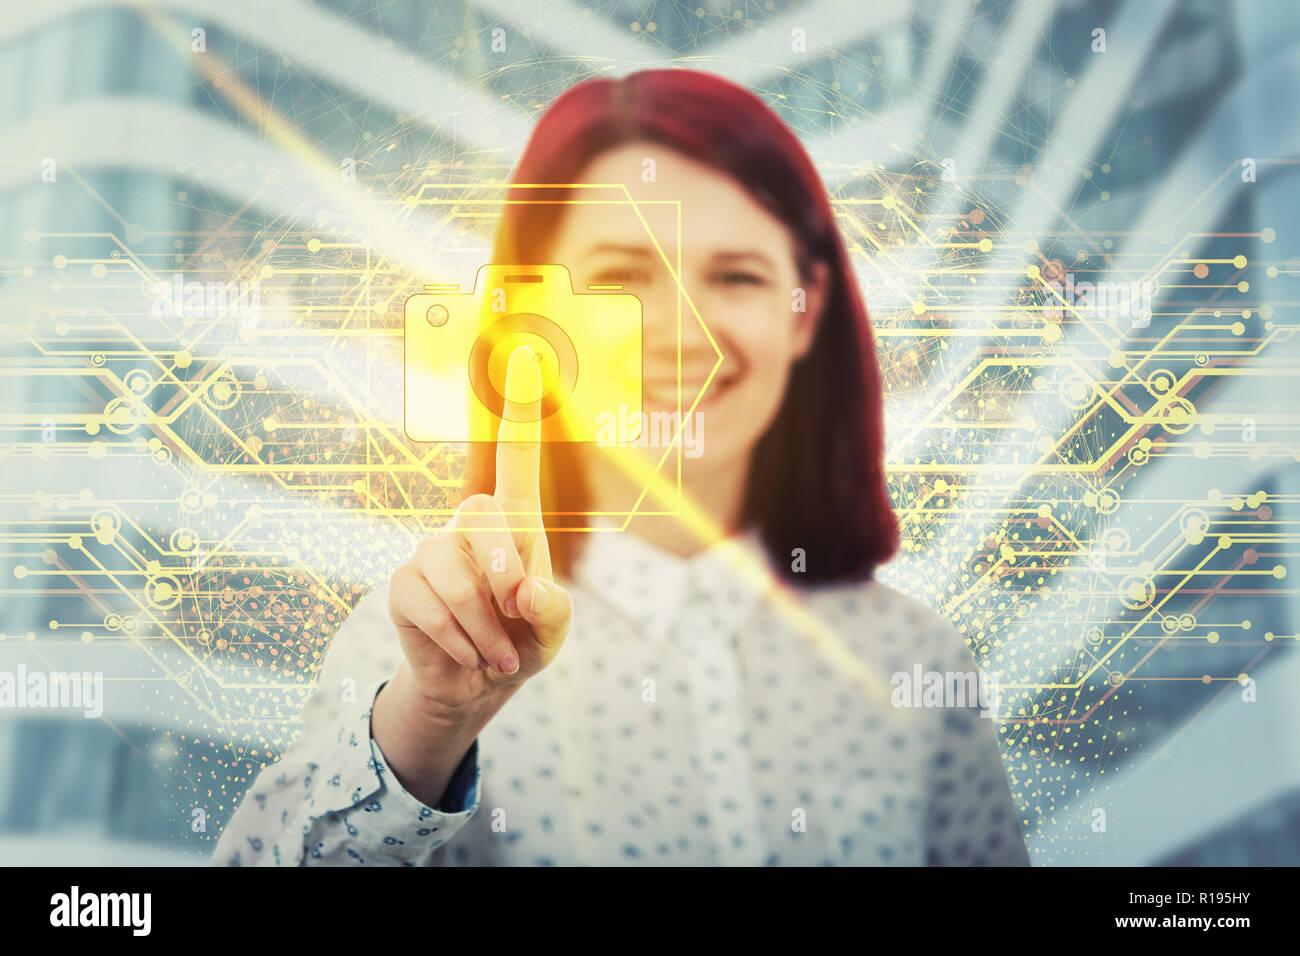 Smiling woman touching digital screen interface. Press on the golden camera icon. Modern technology in professional photography concept. Virtual busin - Stock Image